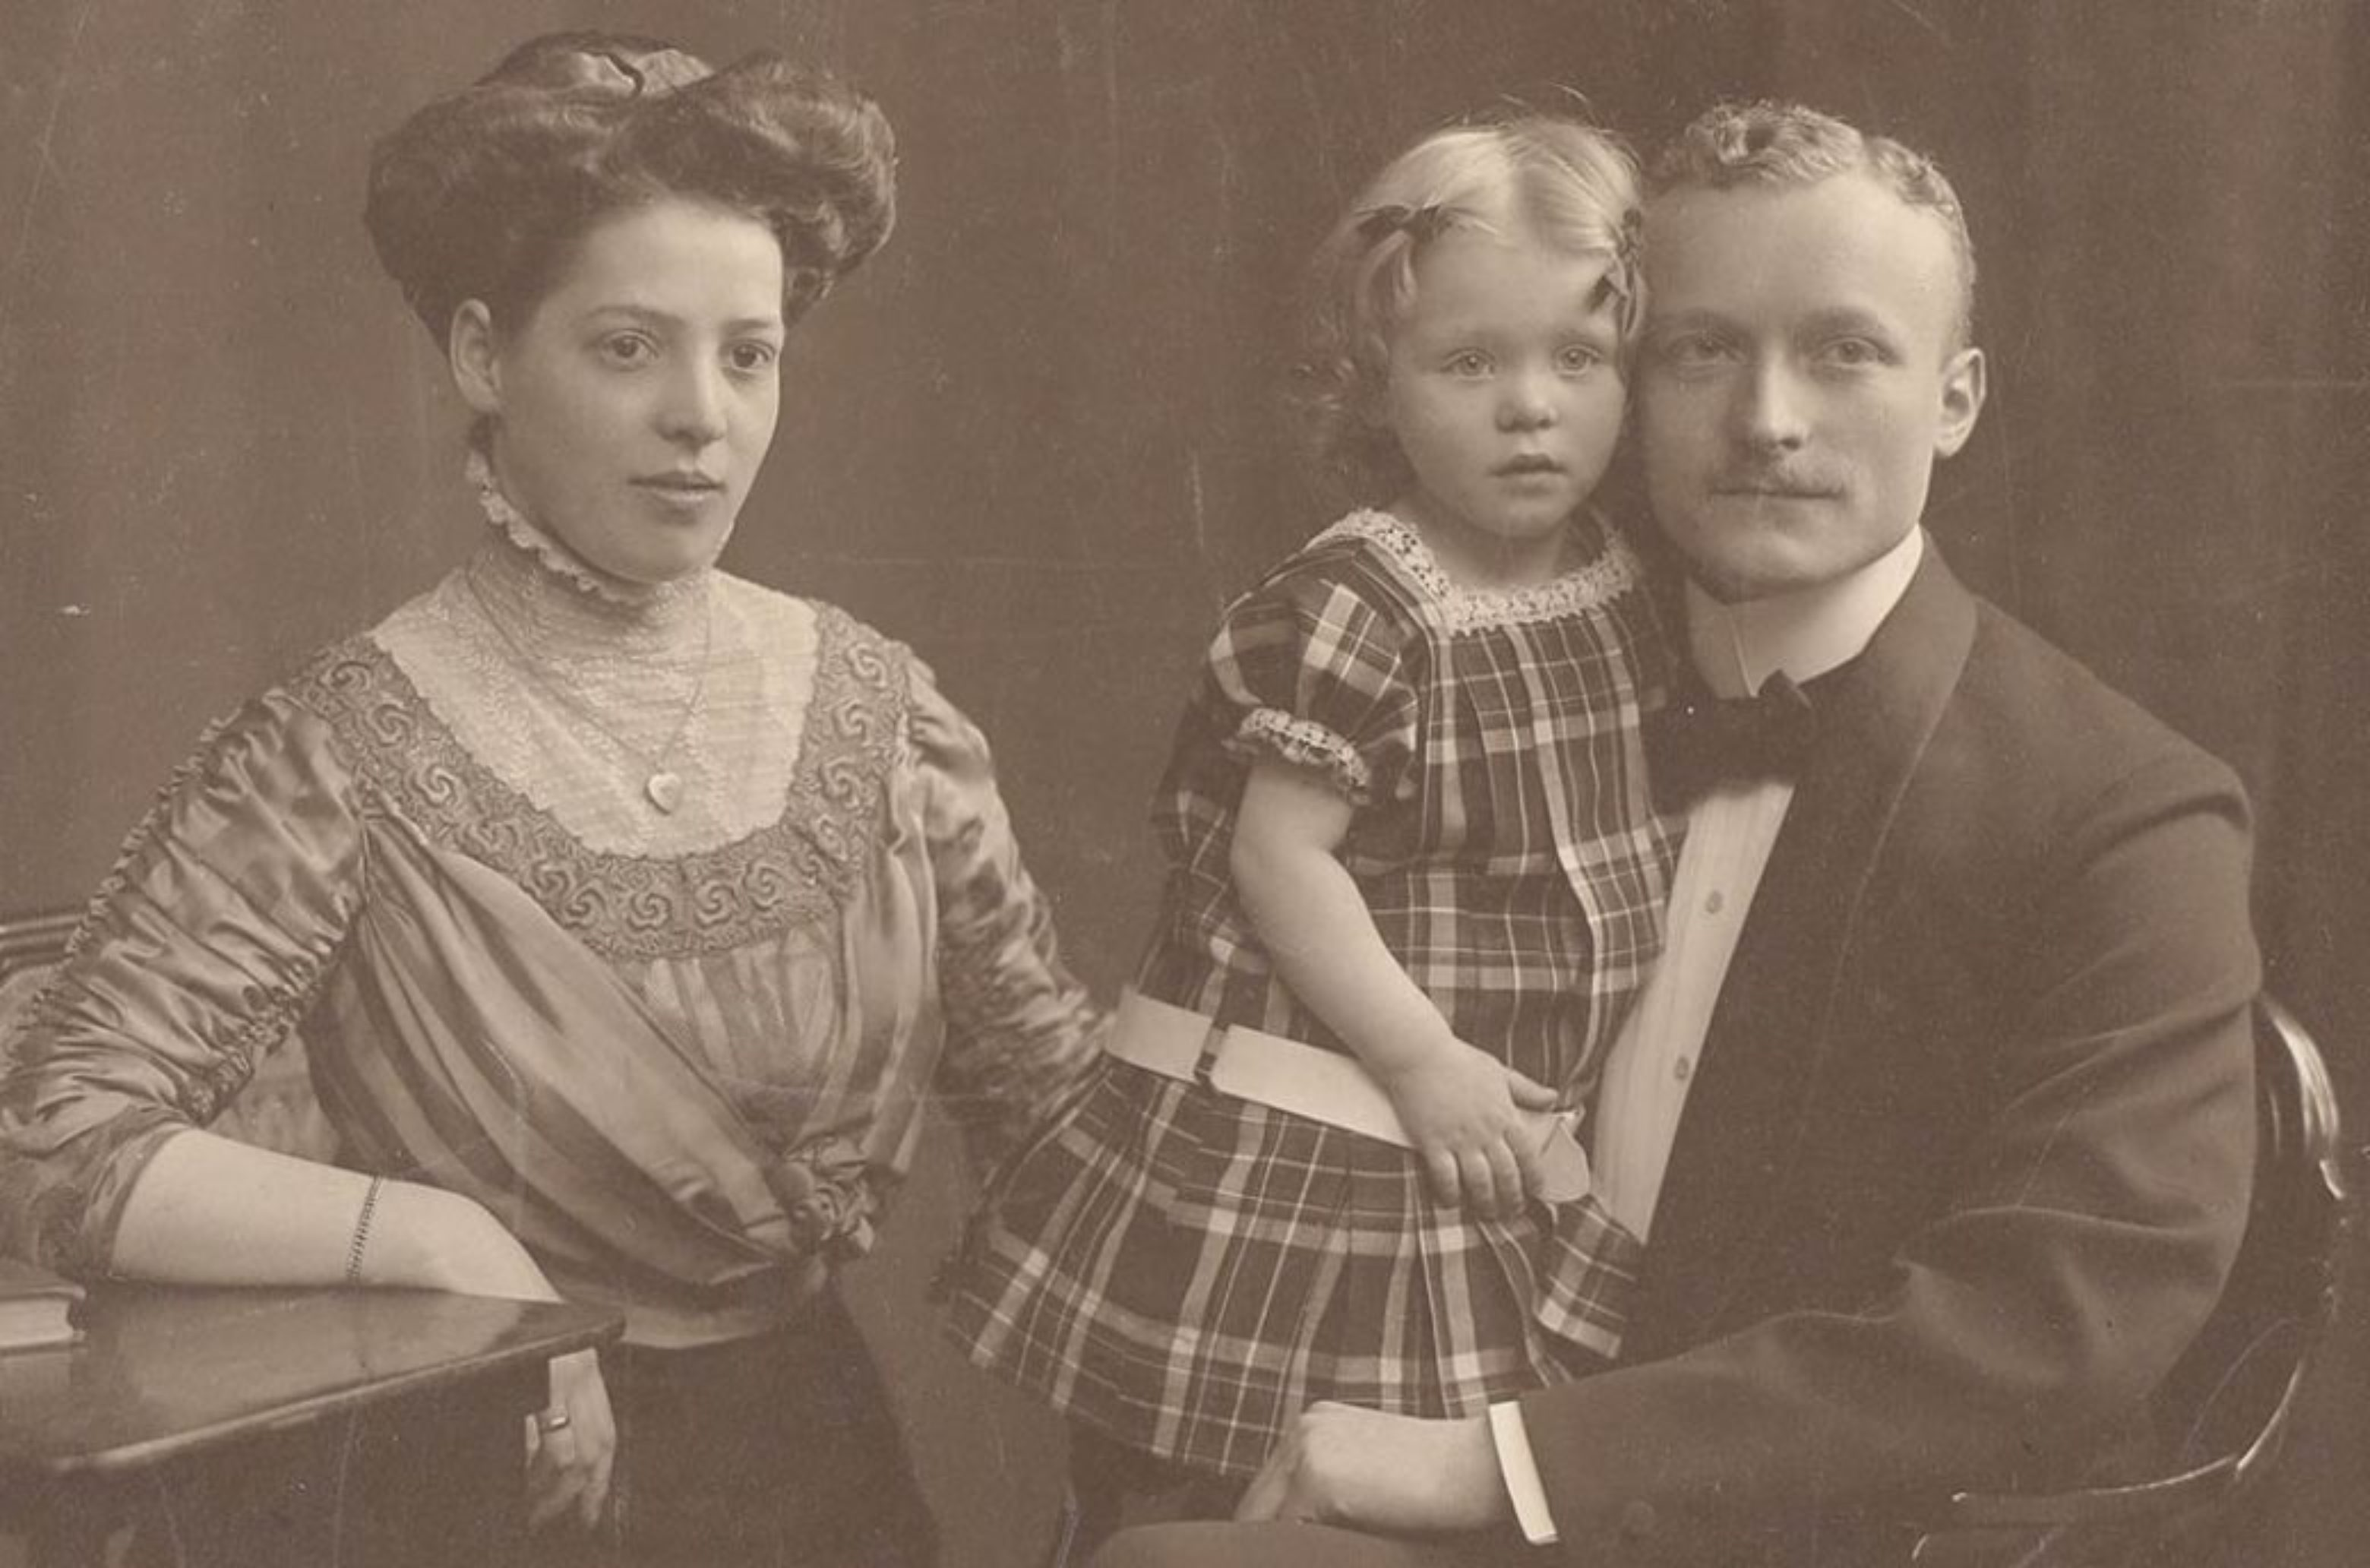 Tony, Hildegard and August Schlicht, ca. 1912